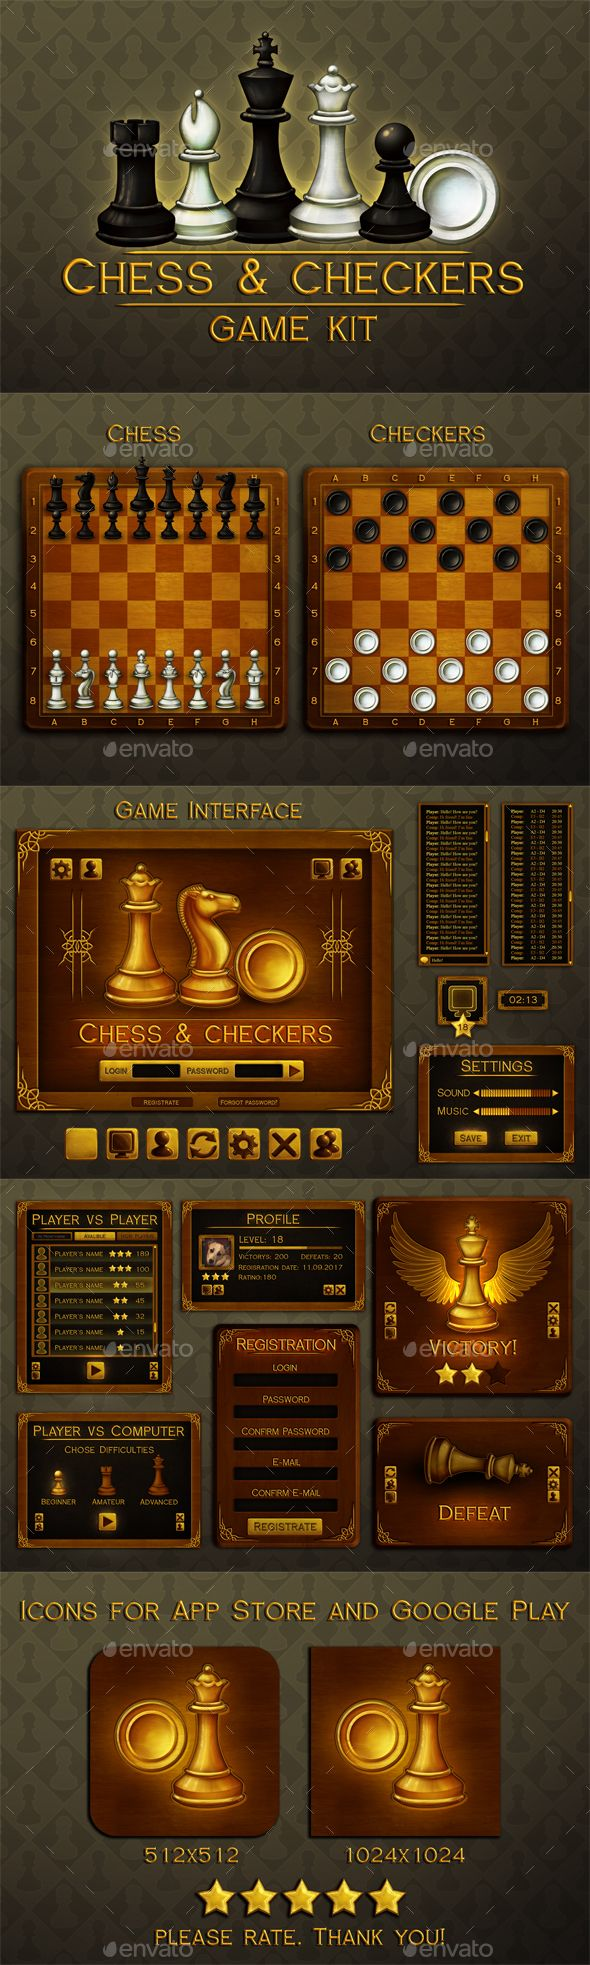 Chess and Checkers Game Assets Game Kits Game Assets